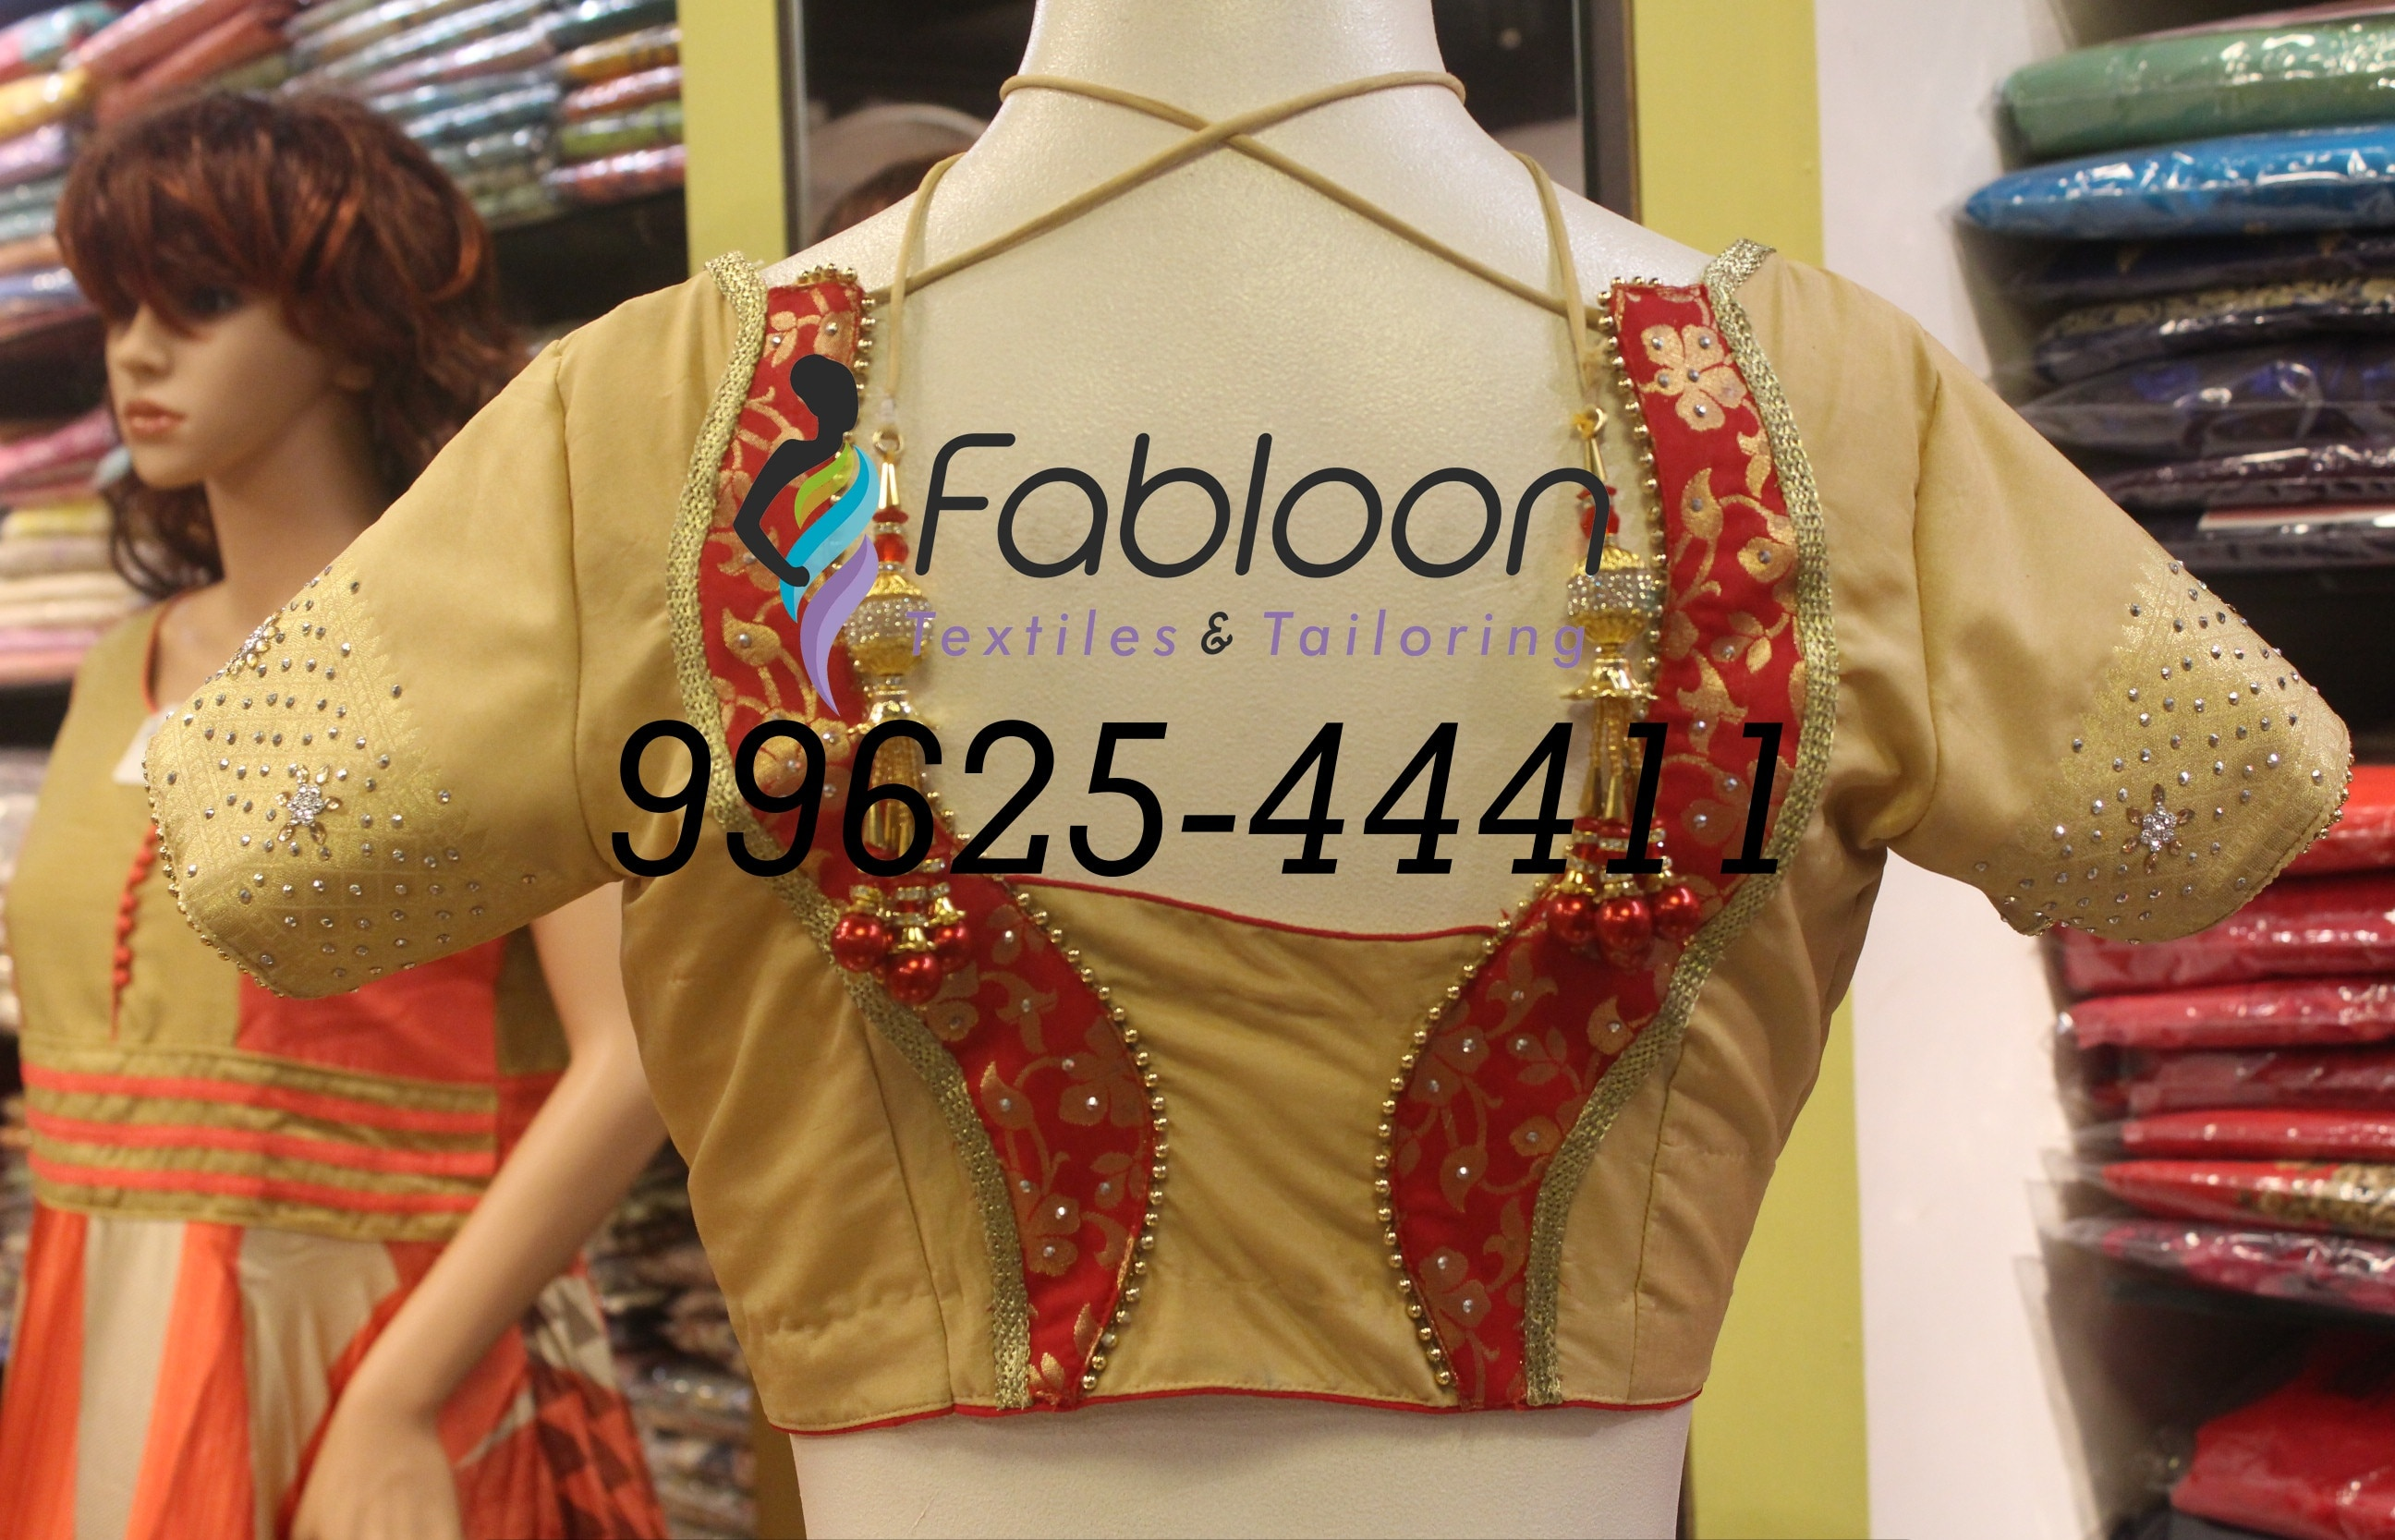 Wedding Blouse Tailors In Chennai.   Aari Work On Wedding Designer Blouse Stitching At Fabloon Textile & Tailoring, Mob: +91 9962544411, 044 48644411.  Aari Work on blouse is one of the hottest trends this season.   The amount of richness a Aari embellishment elements on a fabric cannot be compared with anything else.  This delicate embellishment can be experimented in so many different designs creating traditional and contemporary looks.  Blouses embellished with Aari Work look best when they are worn at night and can be matched up with both Designer Sarees and Kanjeevaram Silk Sarees.  Traditional styles can be created with this kind of Aari Work and what's best is that it is suitable for all ages.